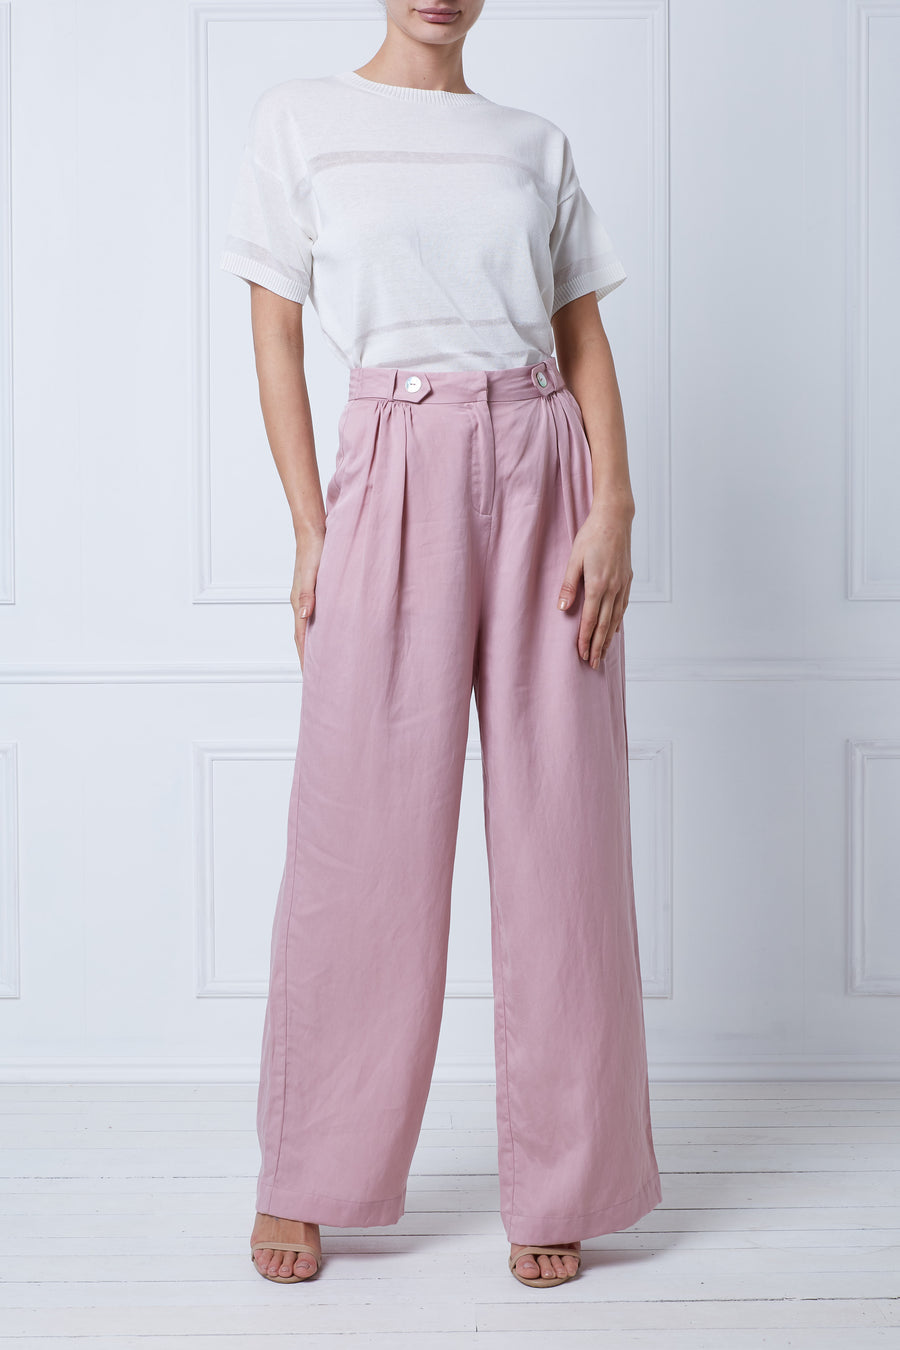 Tiger Lily Gather Pant